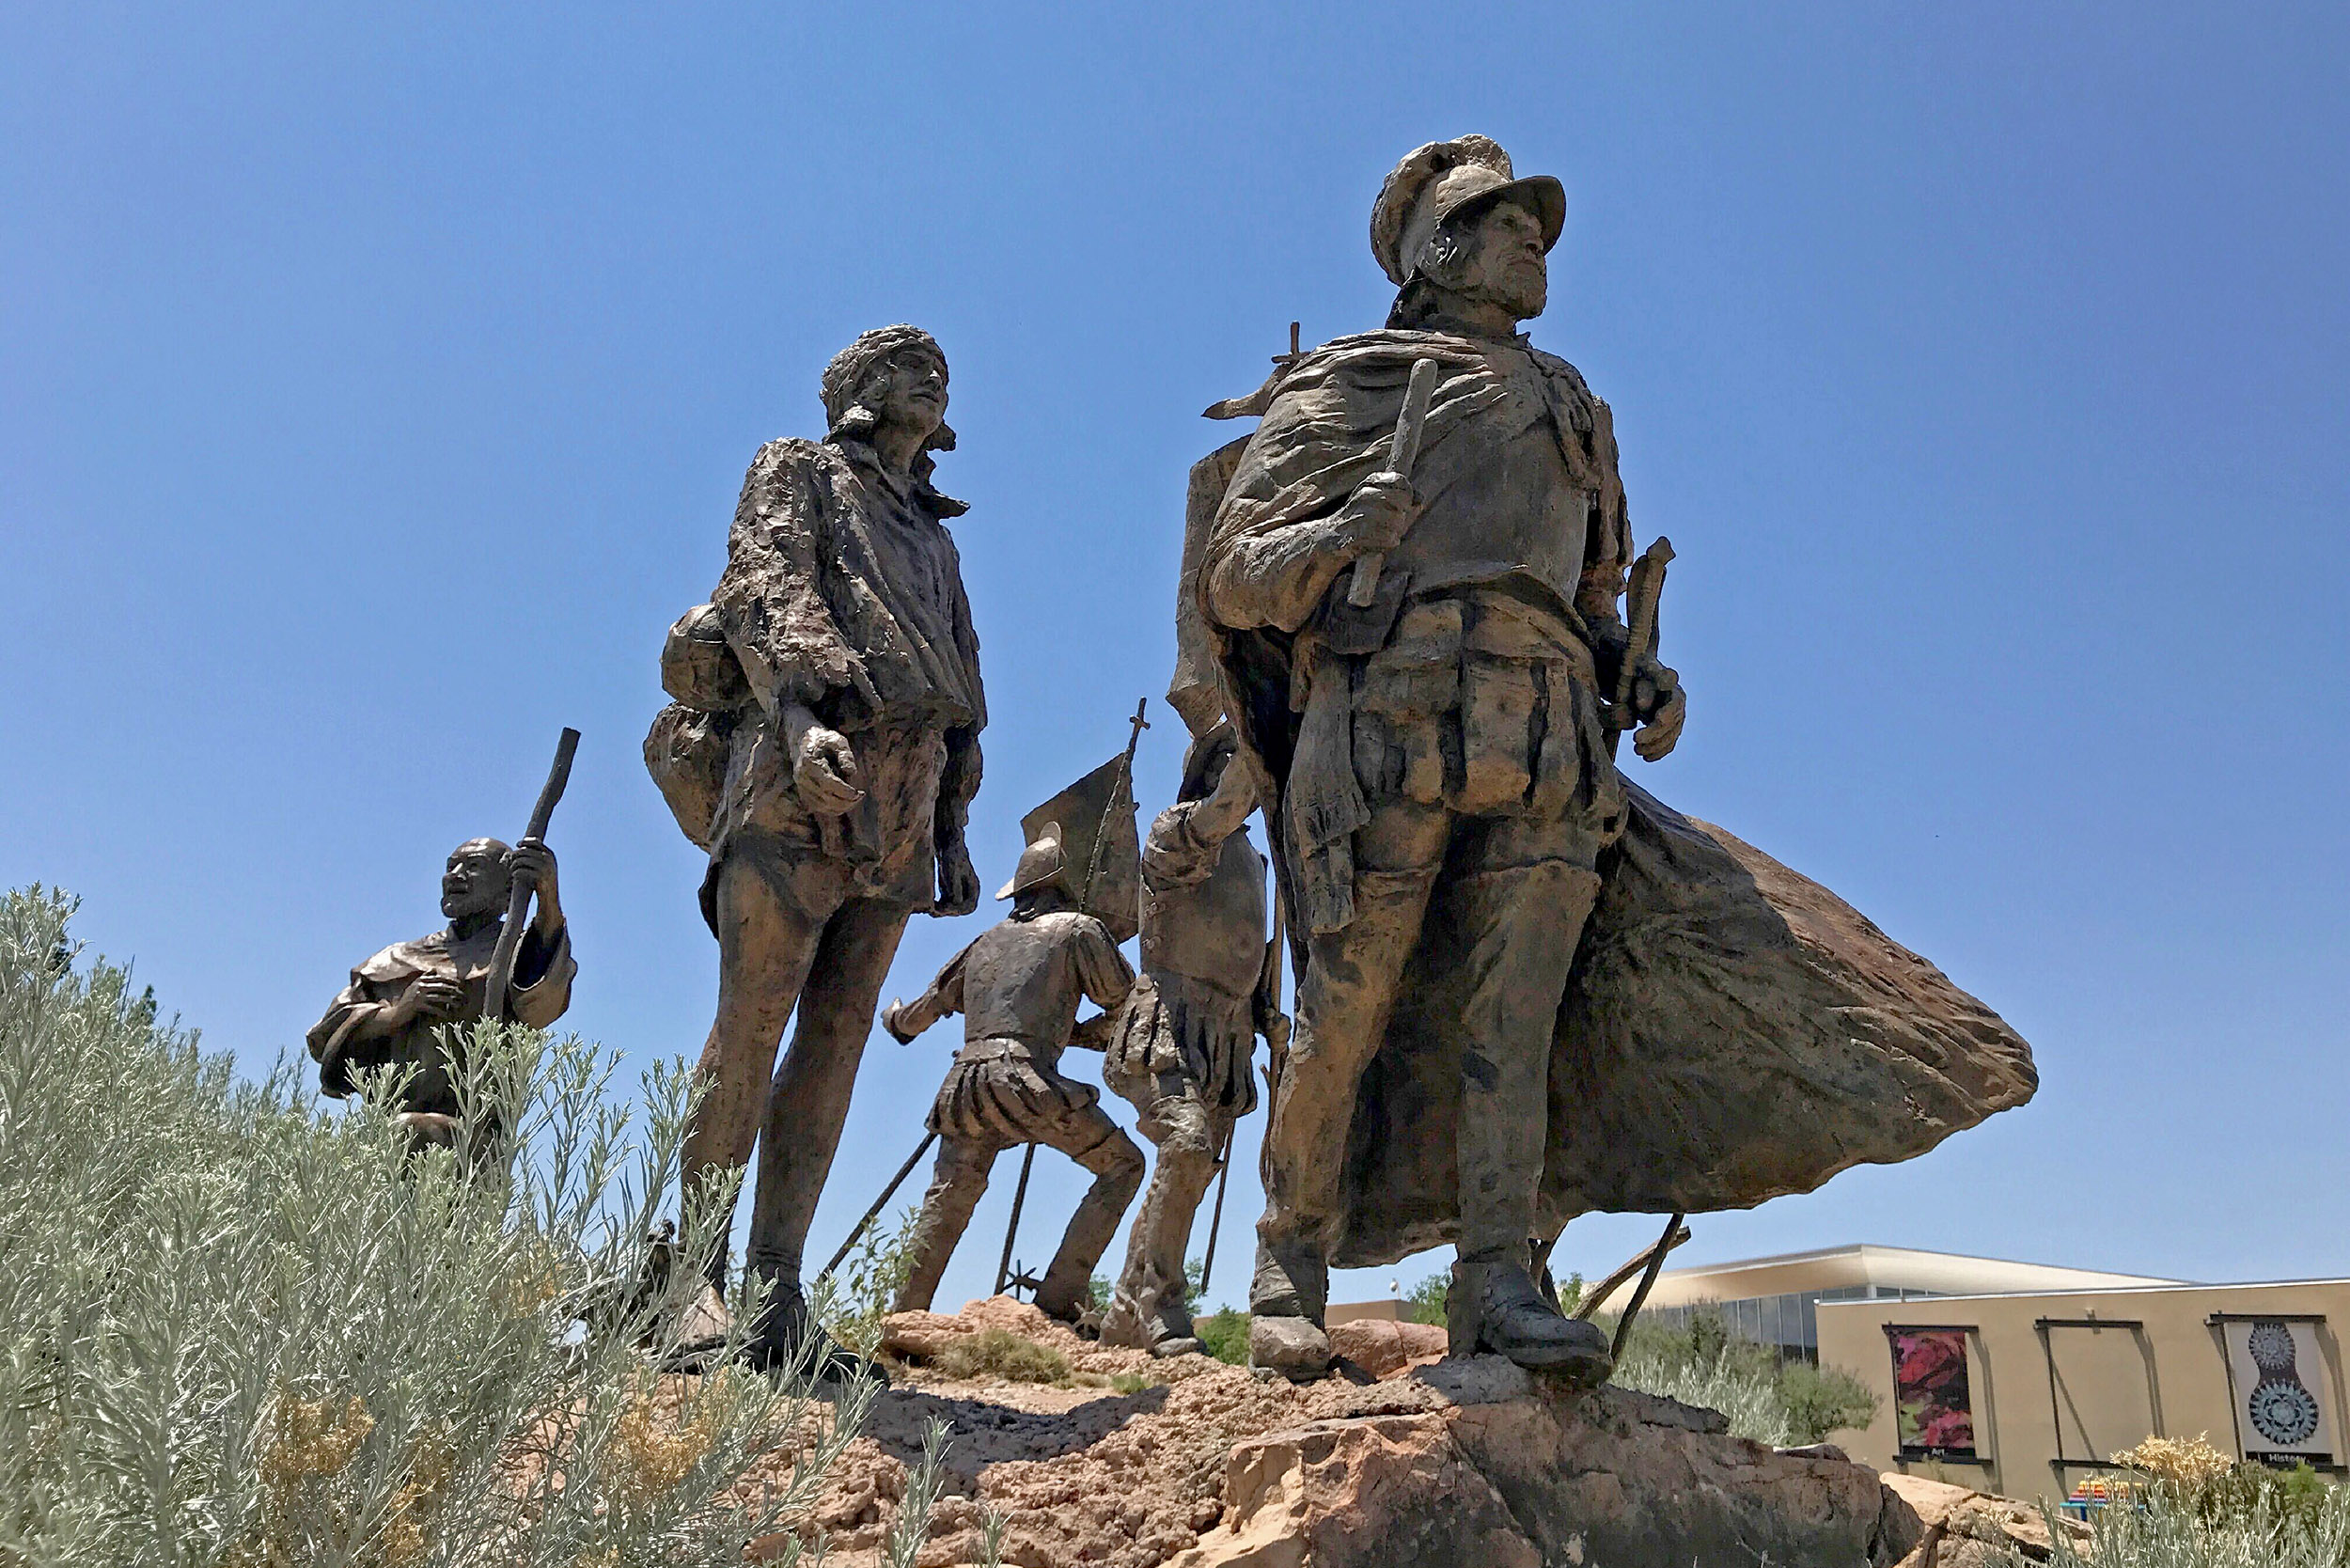 This bronze statue of Don Juan de Oñate leading a group of Spanish settlers stands outside the Albuquerque Museum in Albuquerque, New Mexico, on Friday, June 12.